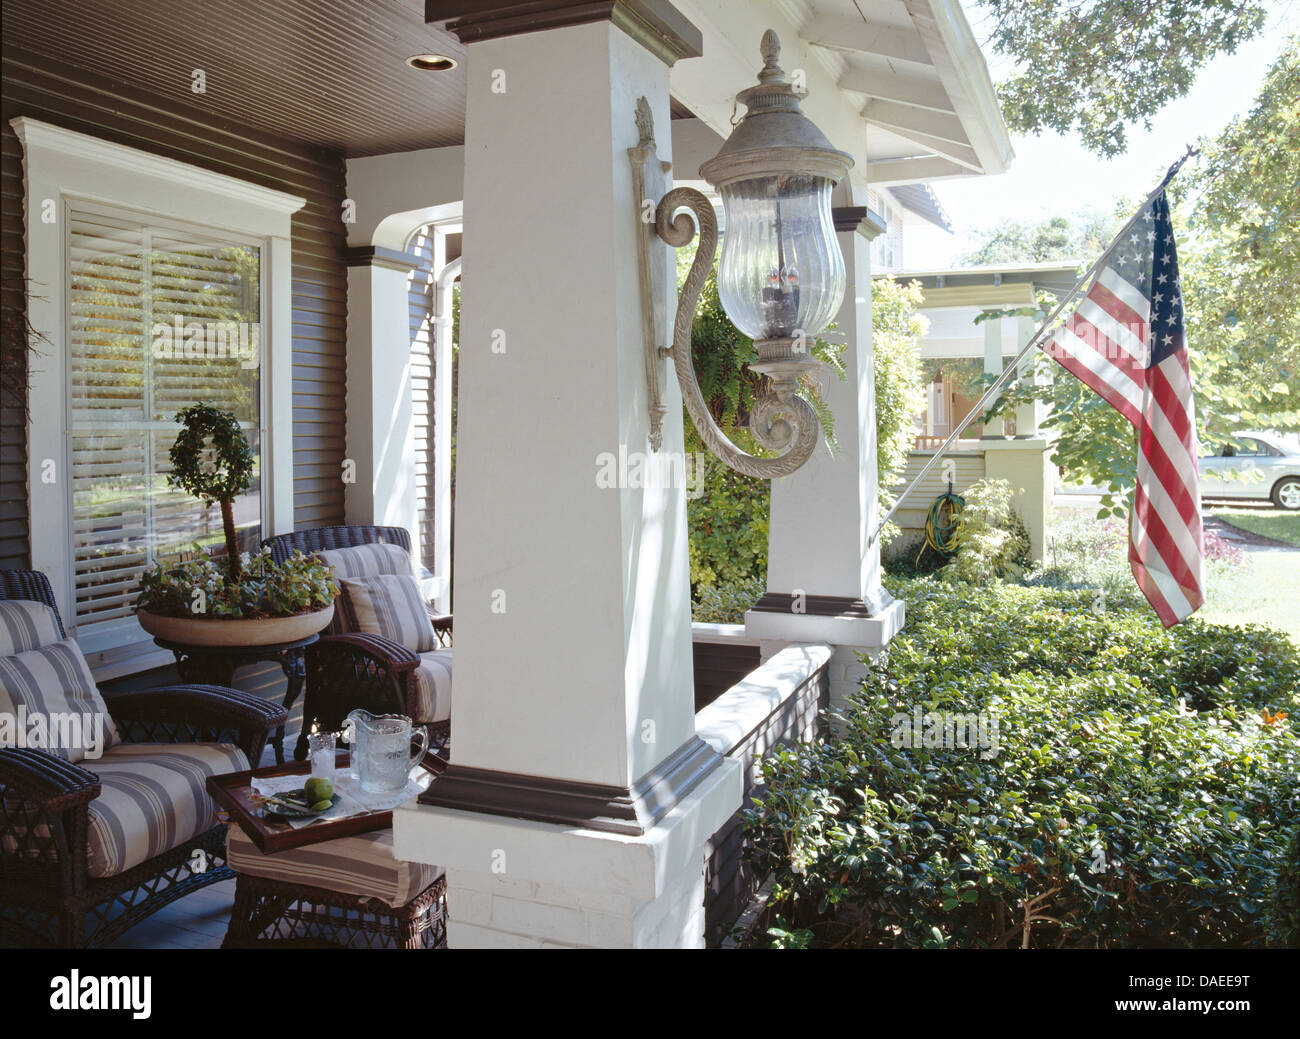 lamp and american flag on pillars of american colonial style house